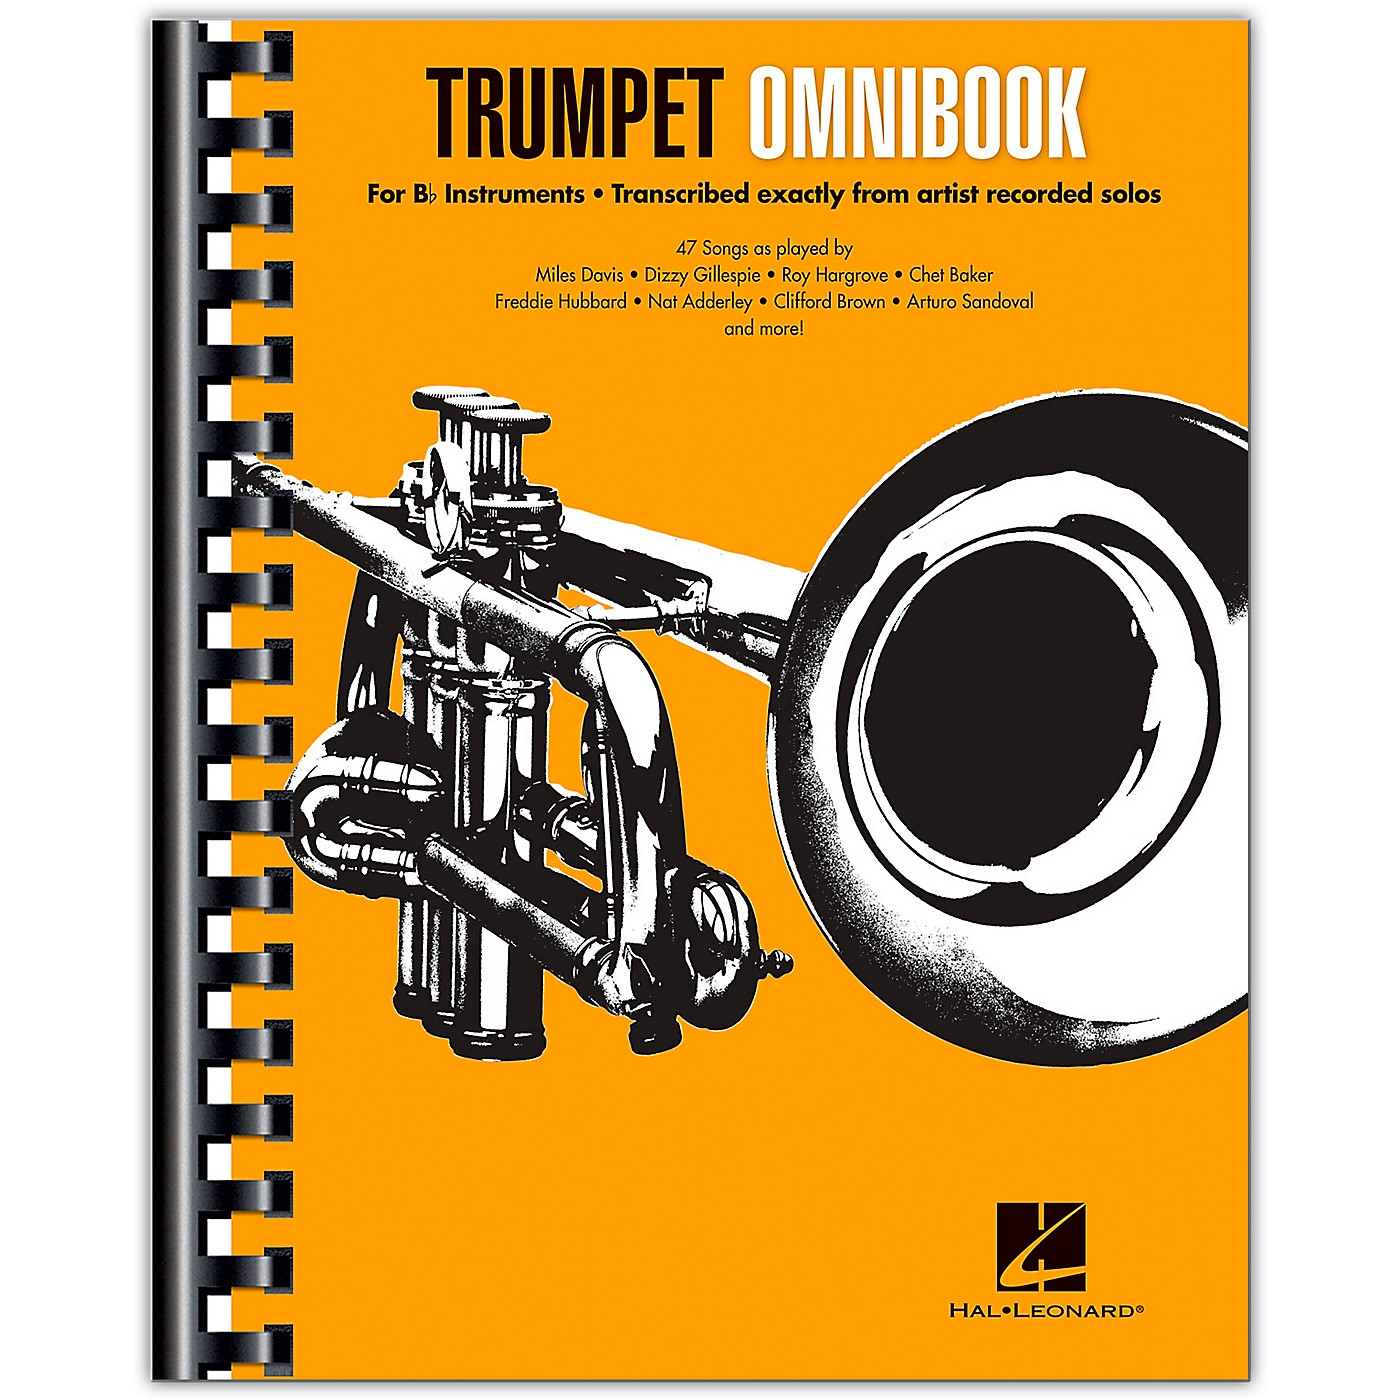 Hal Leonard Trumpet Omnibook For B-Flat Instruments Transcribed Exactly from Artist Recorded Solos thumbnail